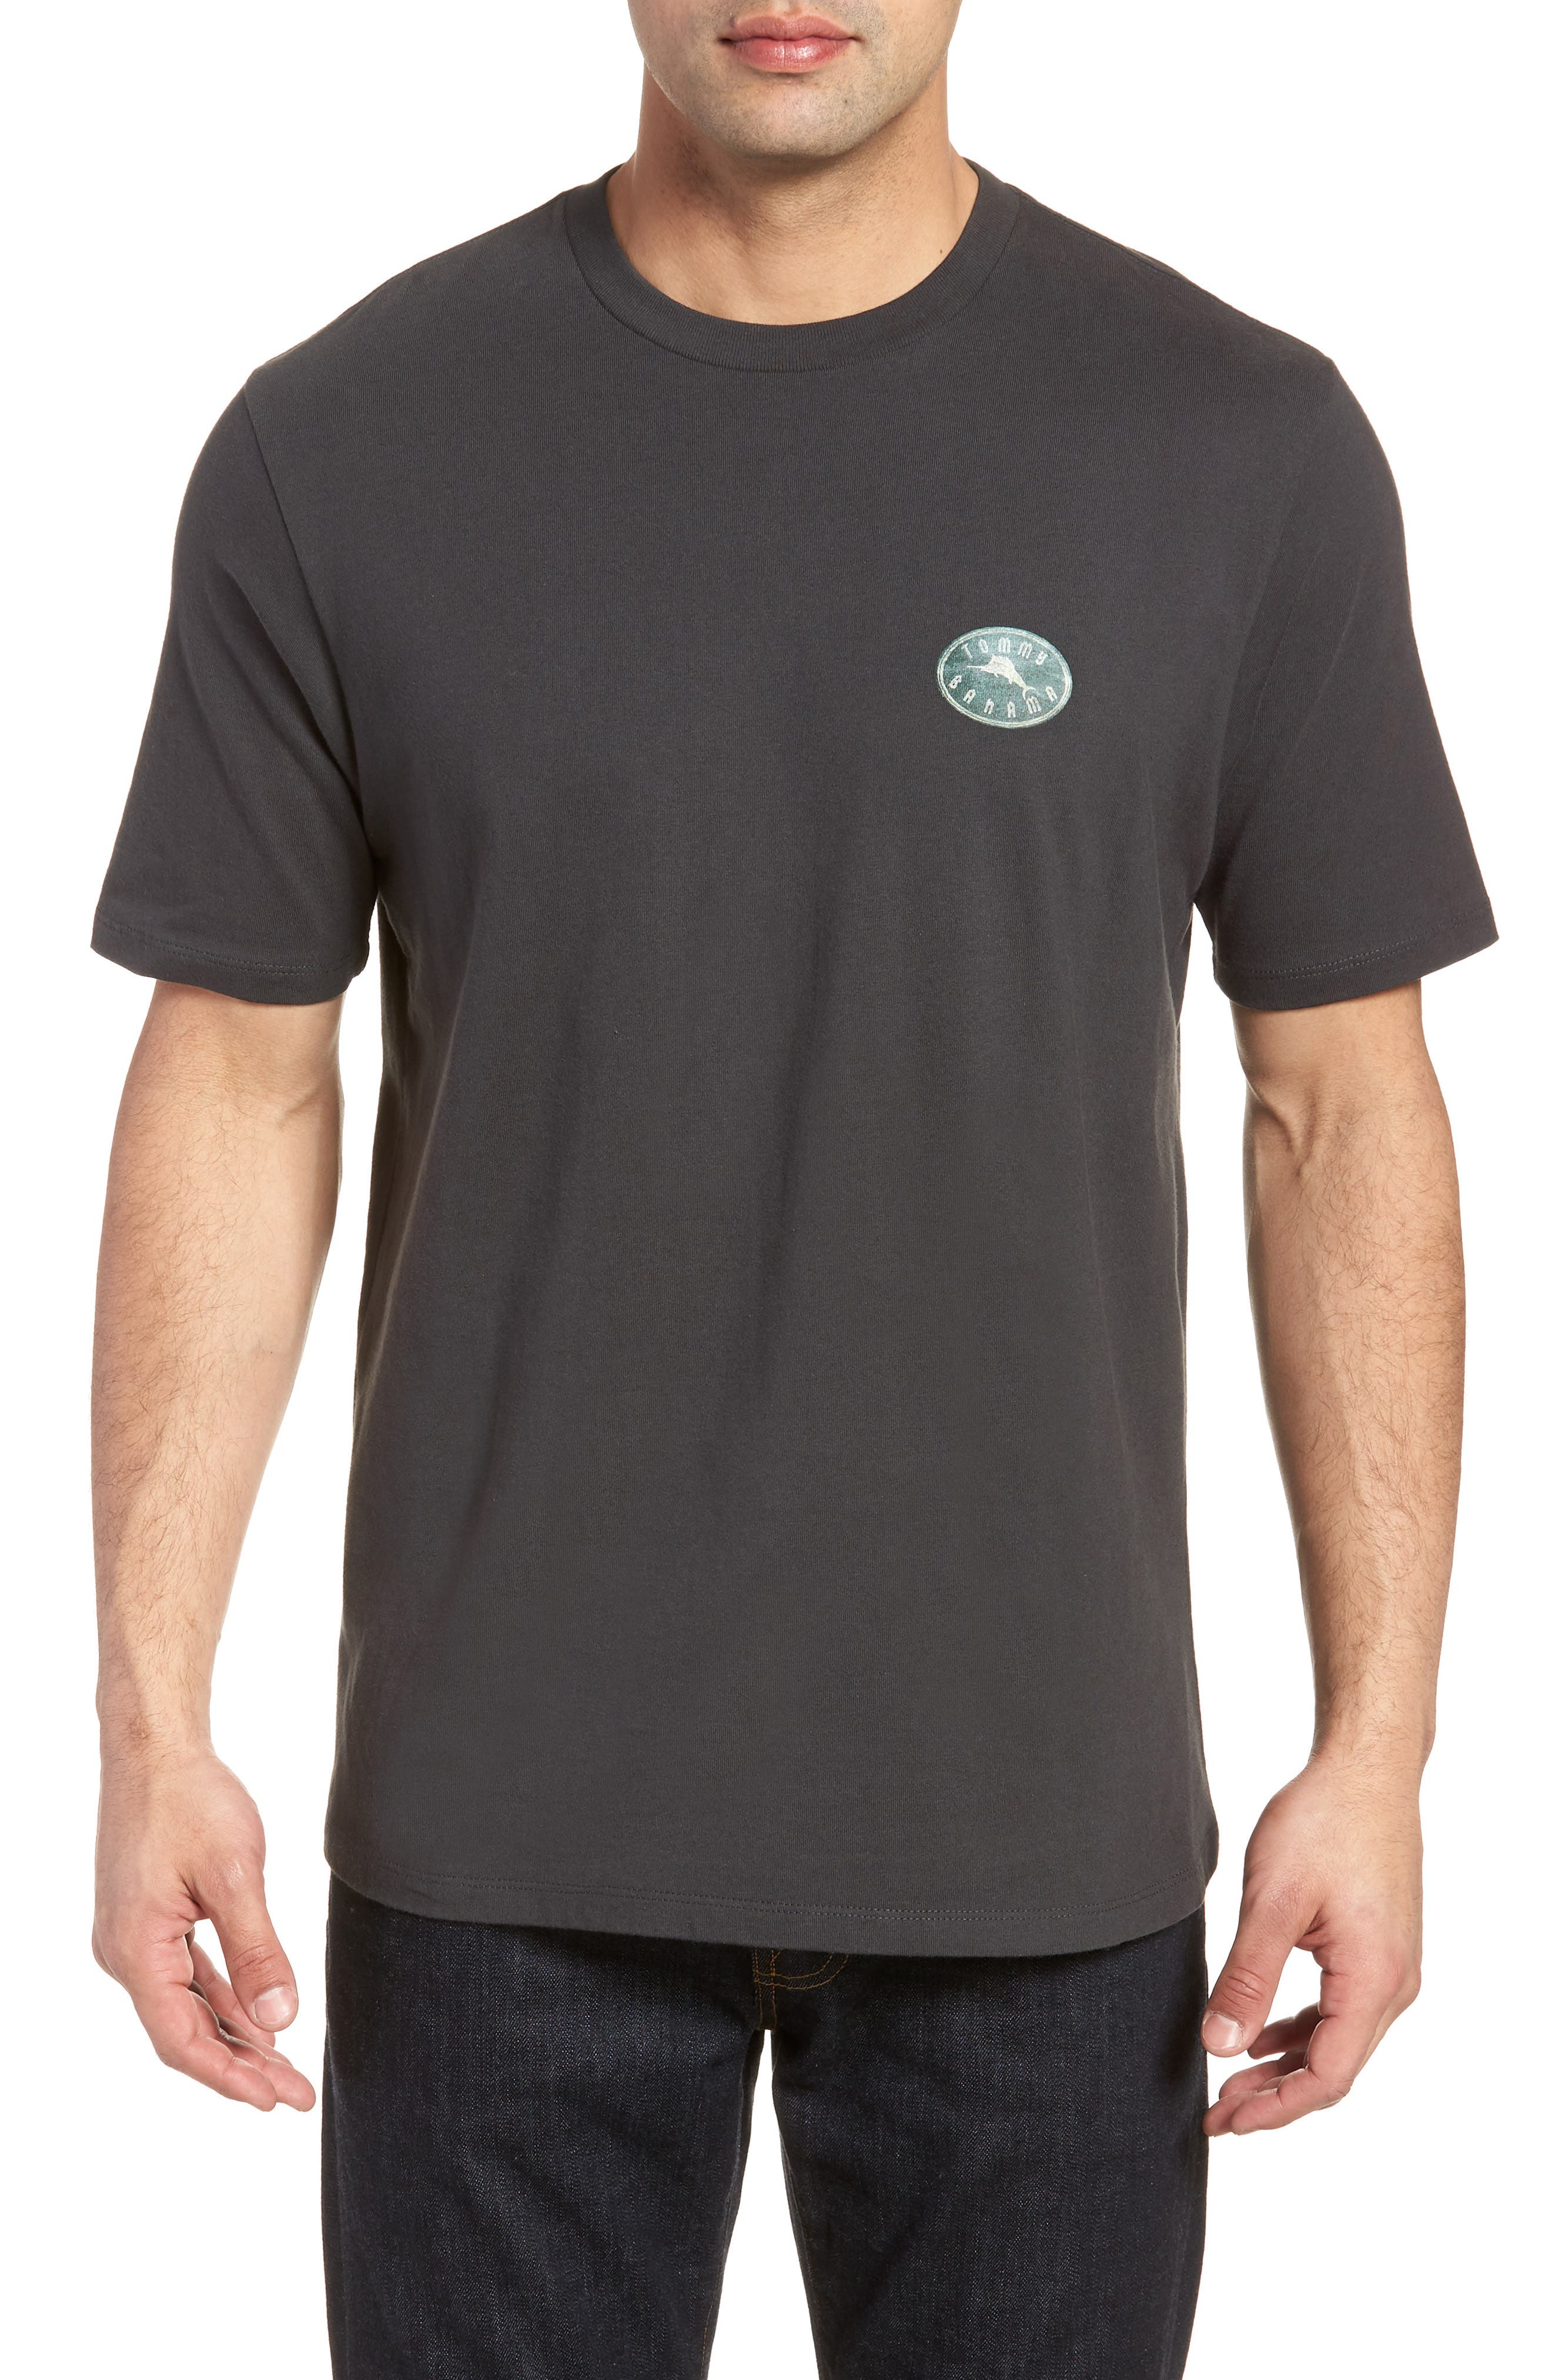 Alternate Image 1 Selected - Tommy Bahama Chalk & Roll T-Shirt